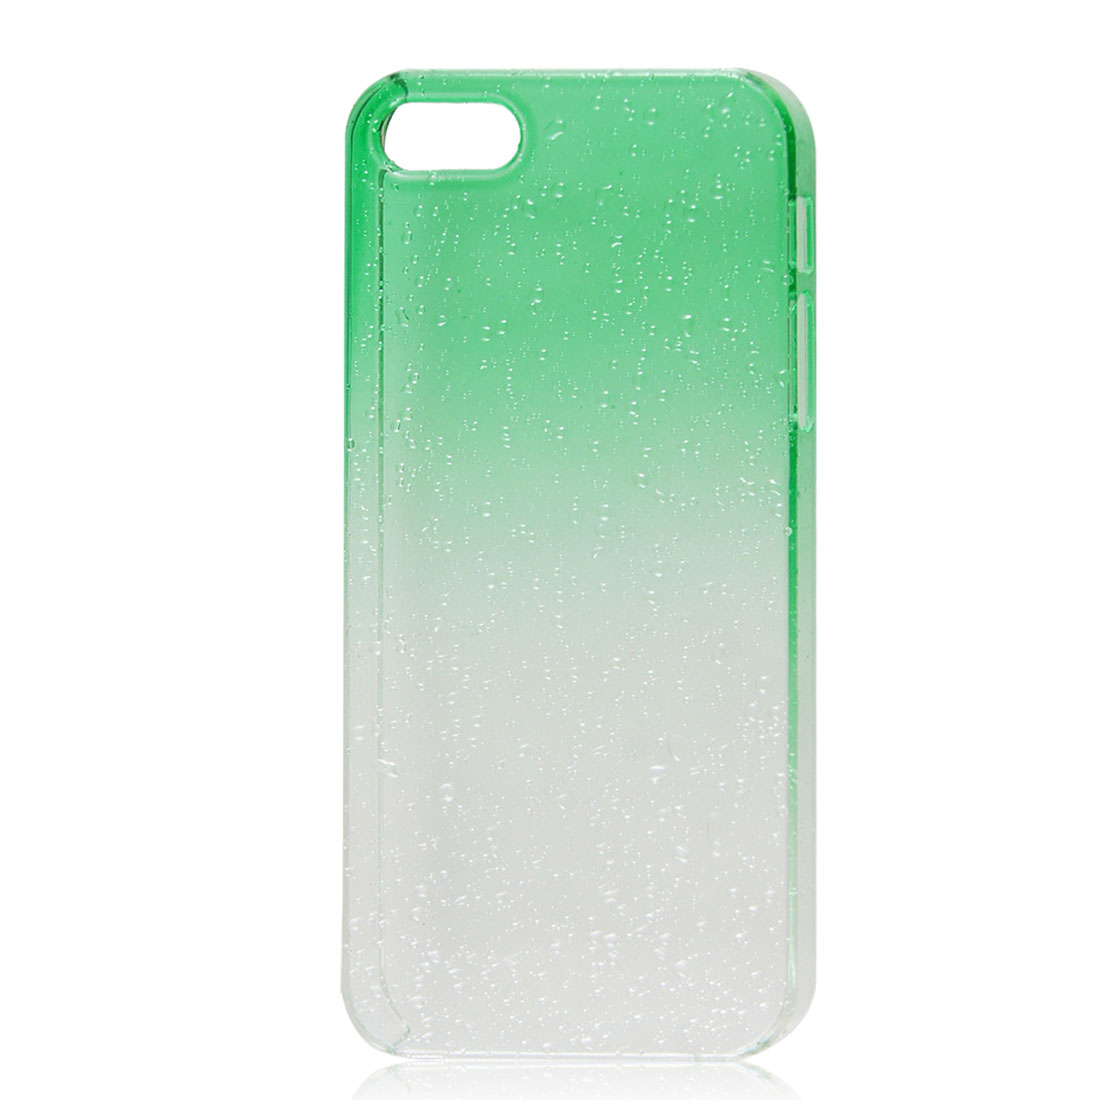 3D Waterdrop Raindrop Green Clear Gradient Hard Case Back Cover for iPhone 5 5G